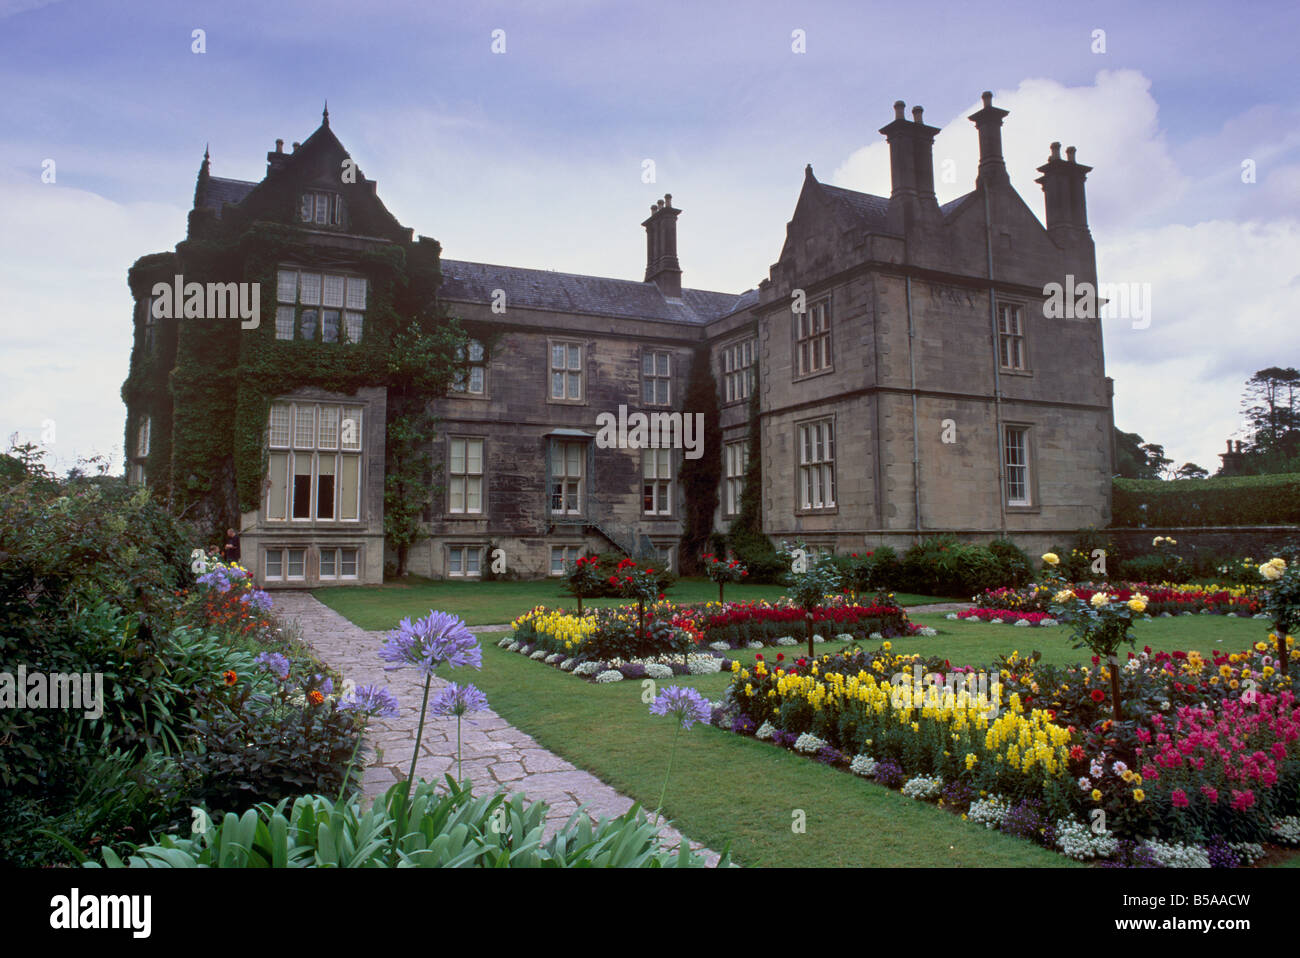 muckross house dating from 1843 victorian house and gardens stock